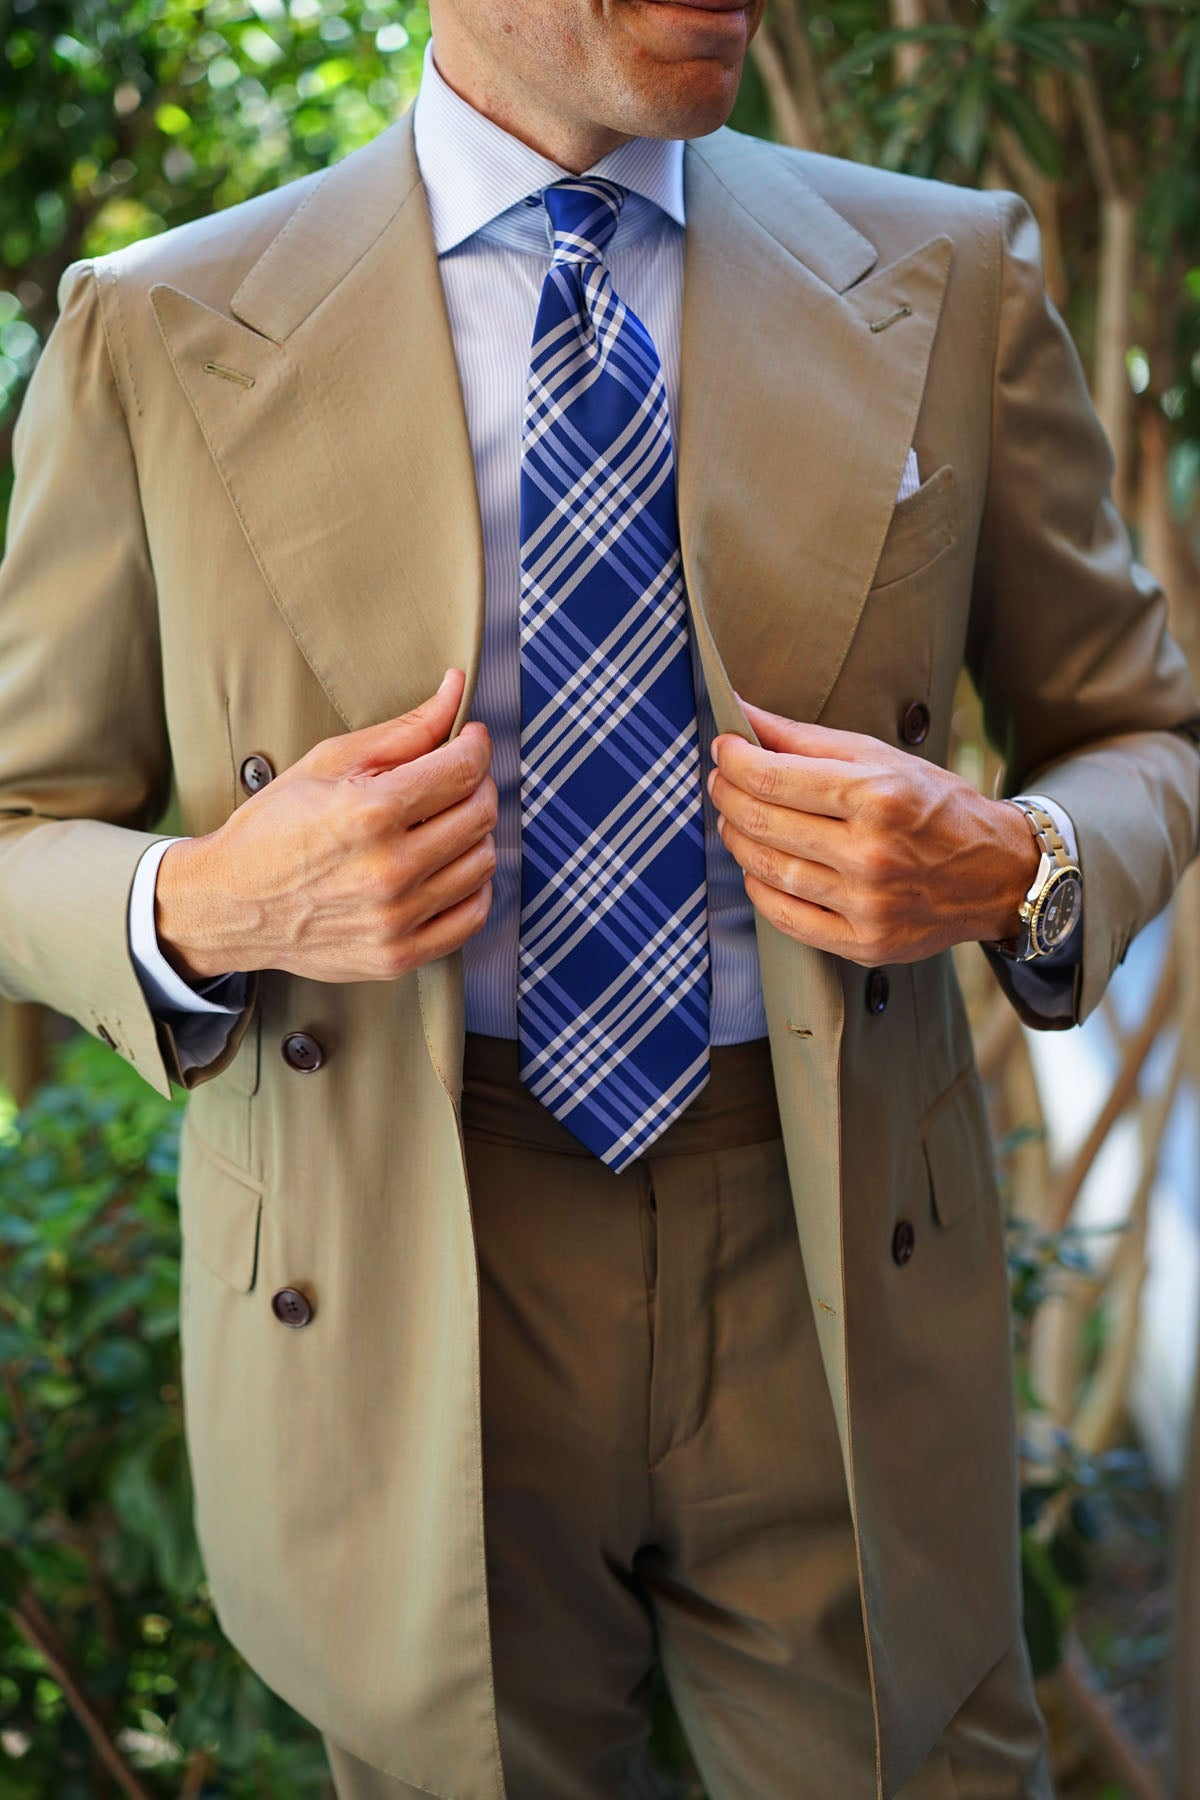 Cobalt Blue with White Stripes Necktie